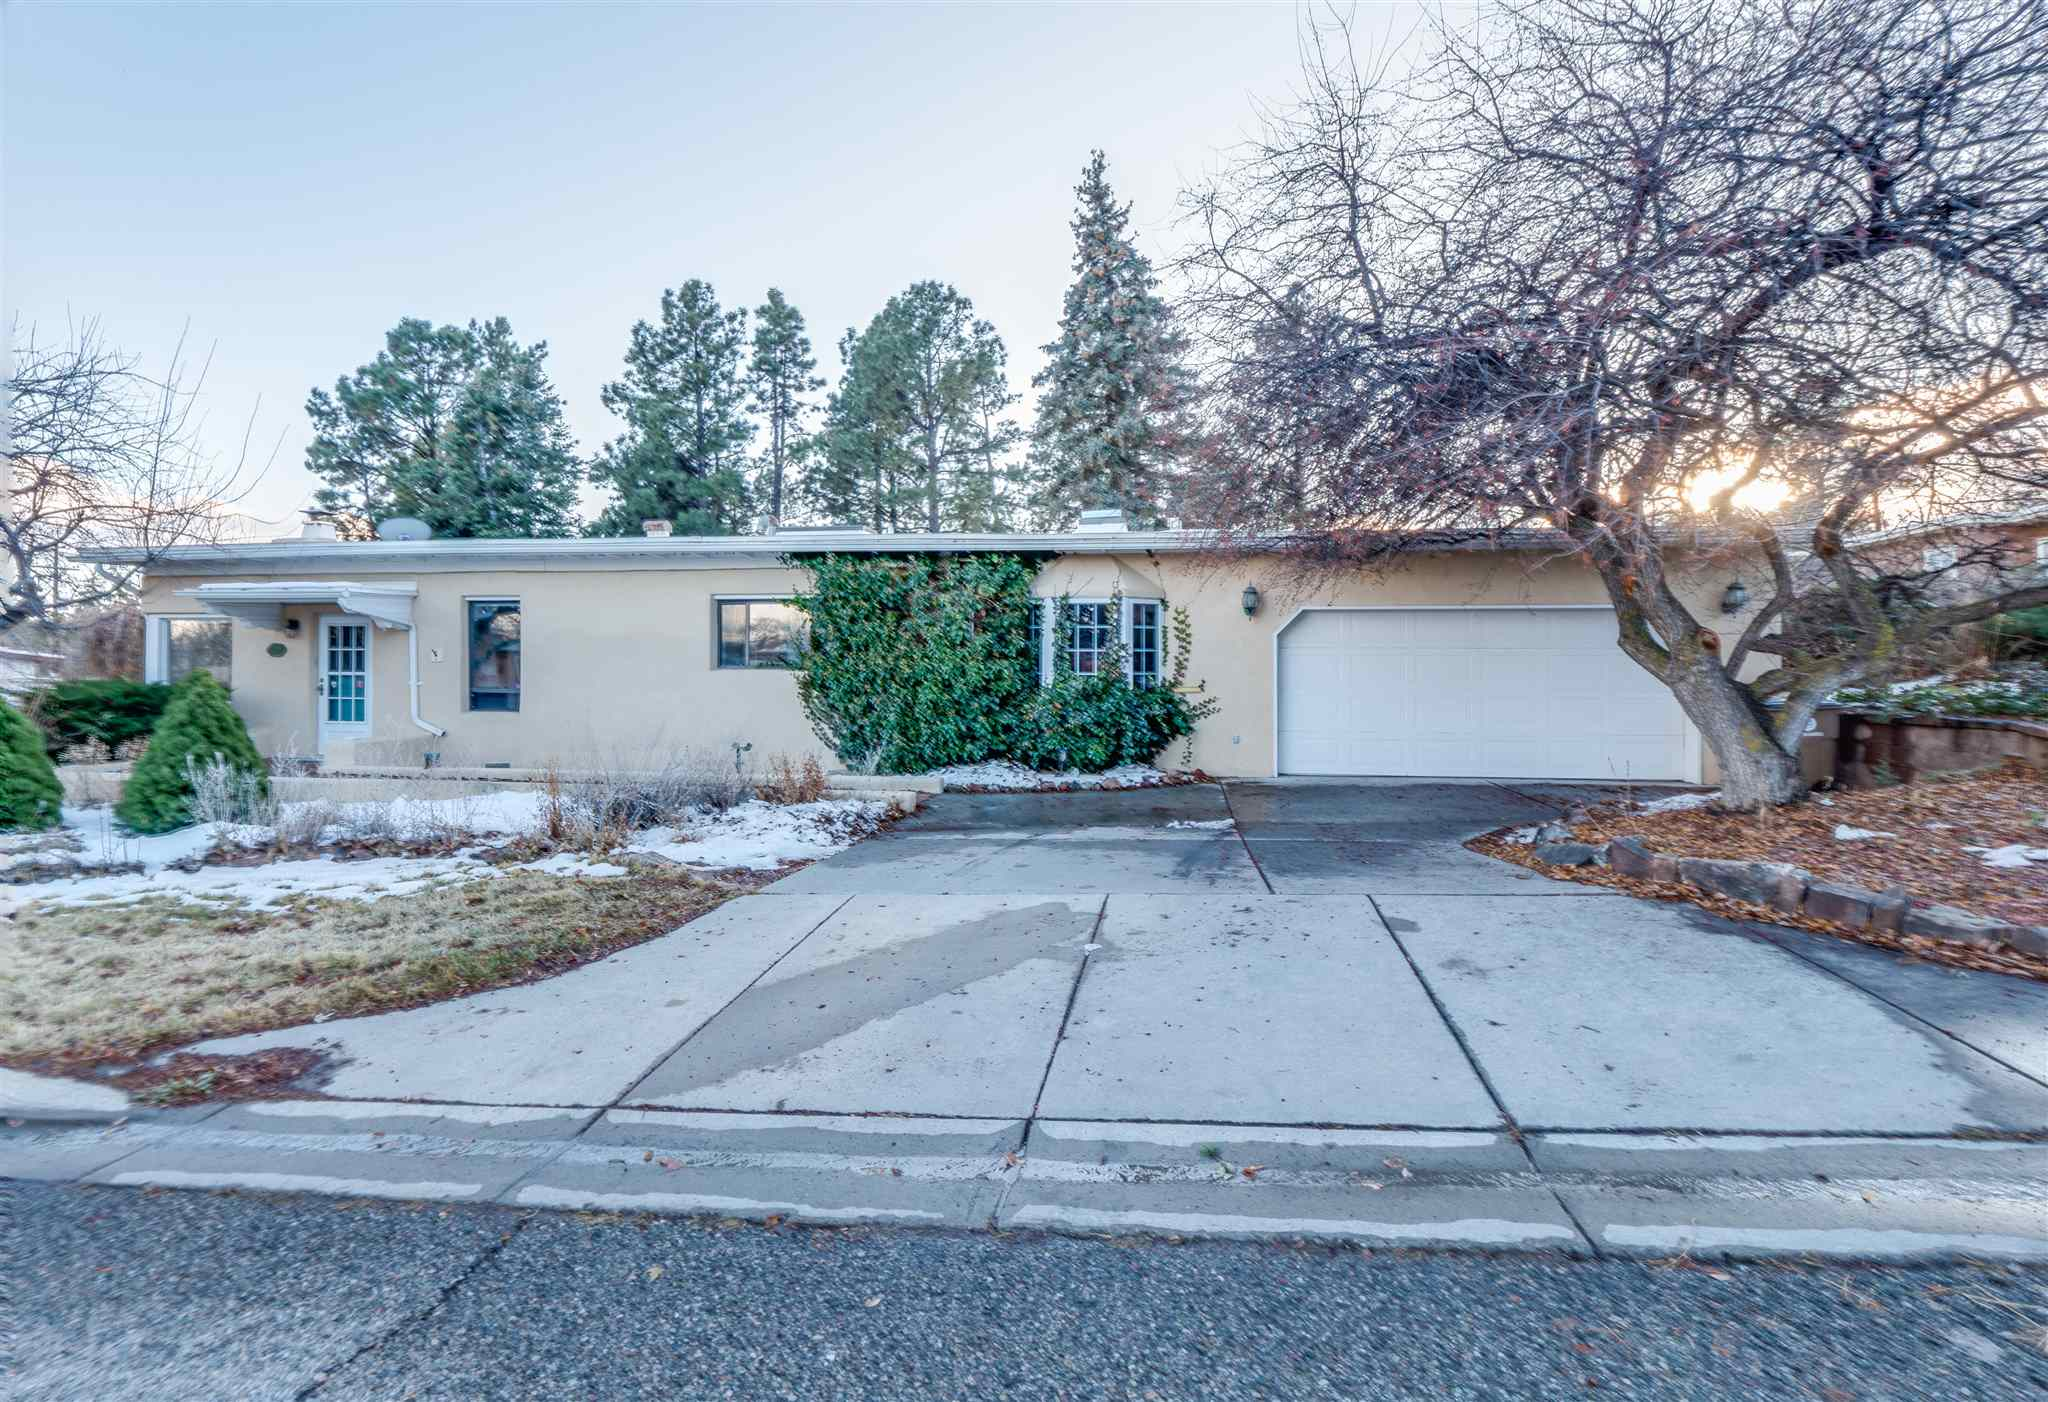 Wow! Western area convenience, landscaped backyard oasis on .35ac lot, and tons of character in this spacious single-level home! Enjoy Jemez mountain views as you arrive at this welcoming home in the perfect central location. Walk into a beautiful front living room with gorgeous beamed wood ceiling, wood flooring, and corner windows all accented by a cozy wood burning fireplace. Adjoining formal dining area has neat built-ins for display and is a light and open space for gathering. The kitchen offers bright tile accents, Saltillo tile floors, butcher block counter area, huge pantry, and window overlooking the front. On one side, the kitchen connects to an awesome mudroom directly off the attached 2-car garage and laundry space which connects to the back of the home. Heading through from the dining and kitchen the other way leads to a neat full guest bath, and much more living space. From here the possibilities are endless! Two more living spaces plus a bonus room with skylights, brick floor, gas stove, and two sets of french doors opening to a courtyard. The master wing, located on one side offers a walk-in closet, adjacent 3/4 bath, shelving, and storage. The other side of the home provides an inviting guest suite with beamed wood ceiling and 3/4 ensuite. Enjoy easy access to the ice rink and Pajarito Mountain this winter and when spring arrives you'll be ready to enjoy wonderful perennial gardens throughout the backyard, tall pines, green grass, and tons of outdoor space!